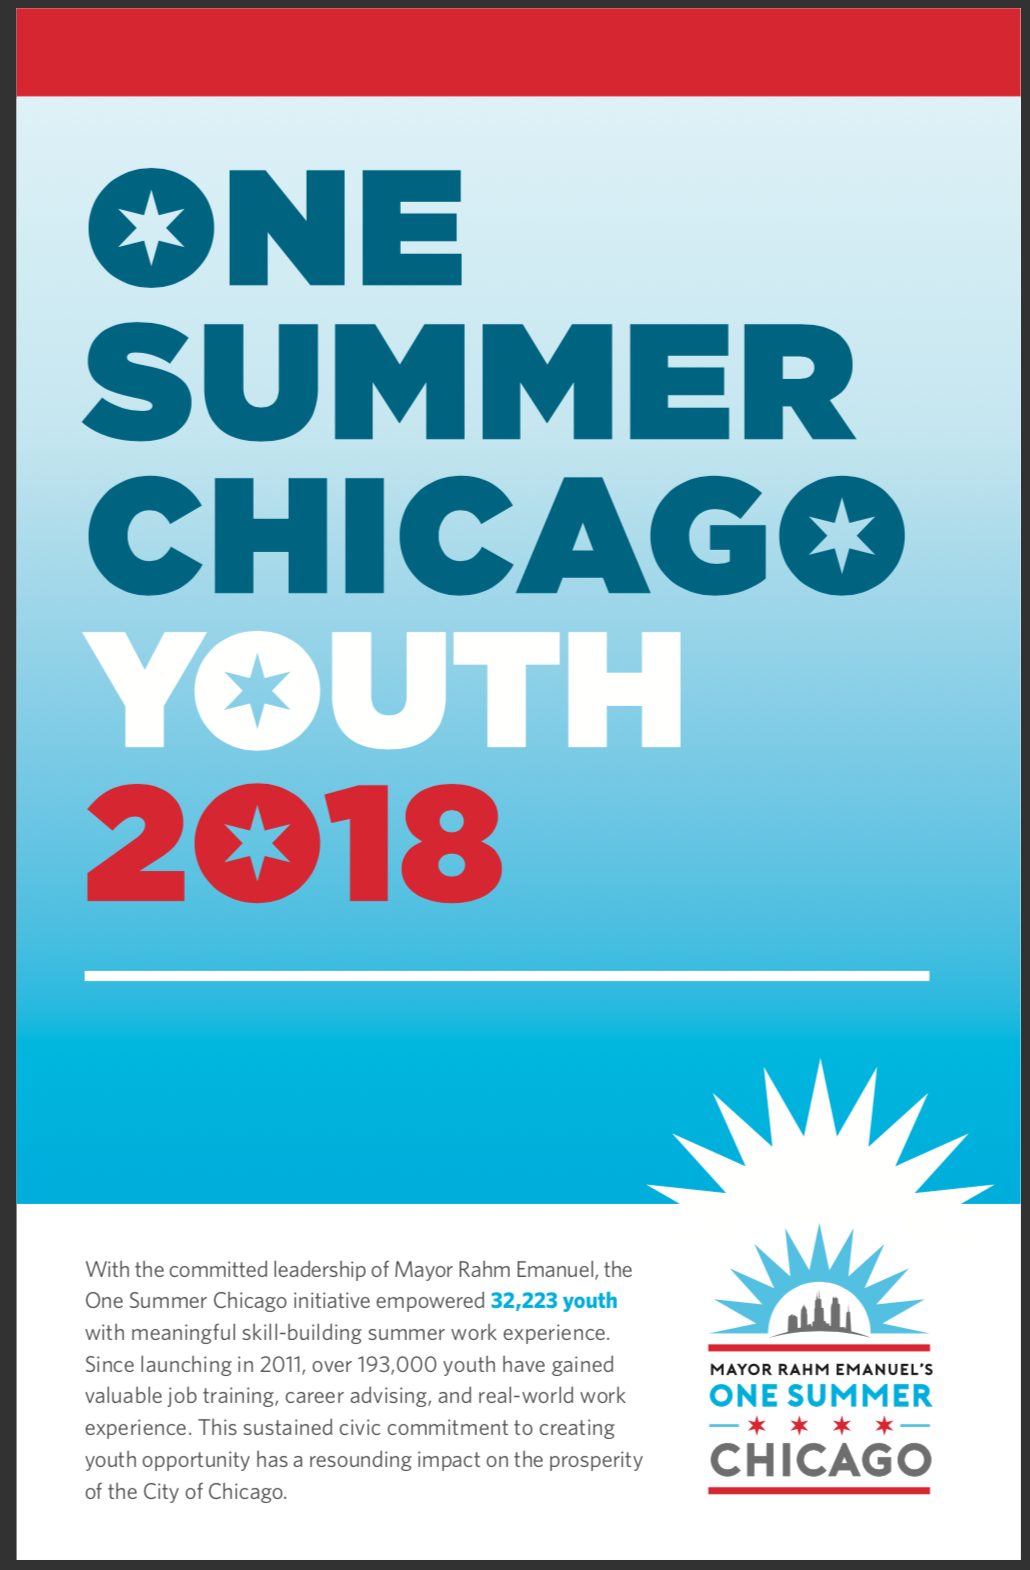 One Summer Chicago 2018